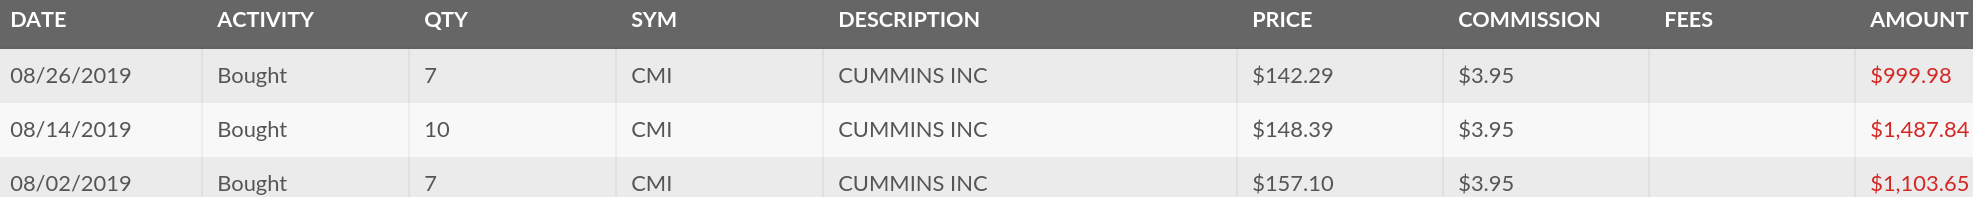 Lanny's Dividend Stock Purchase Activity - August 2019